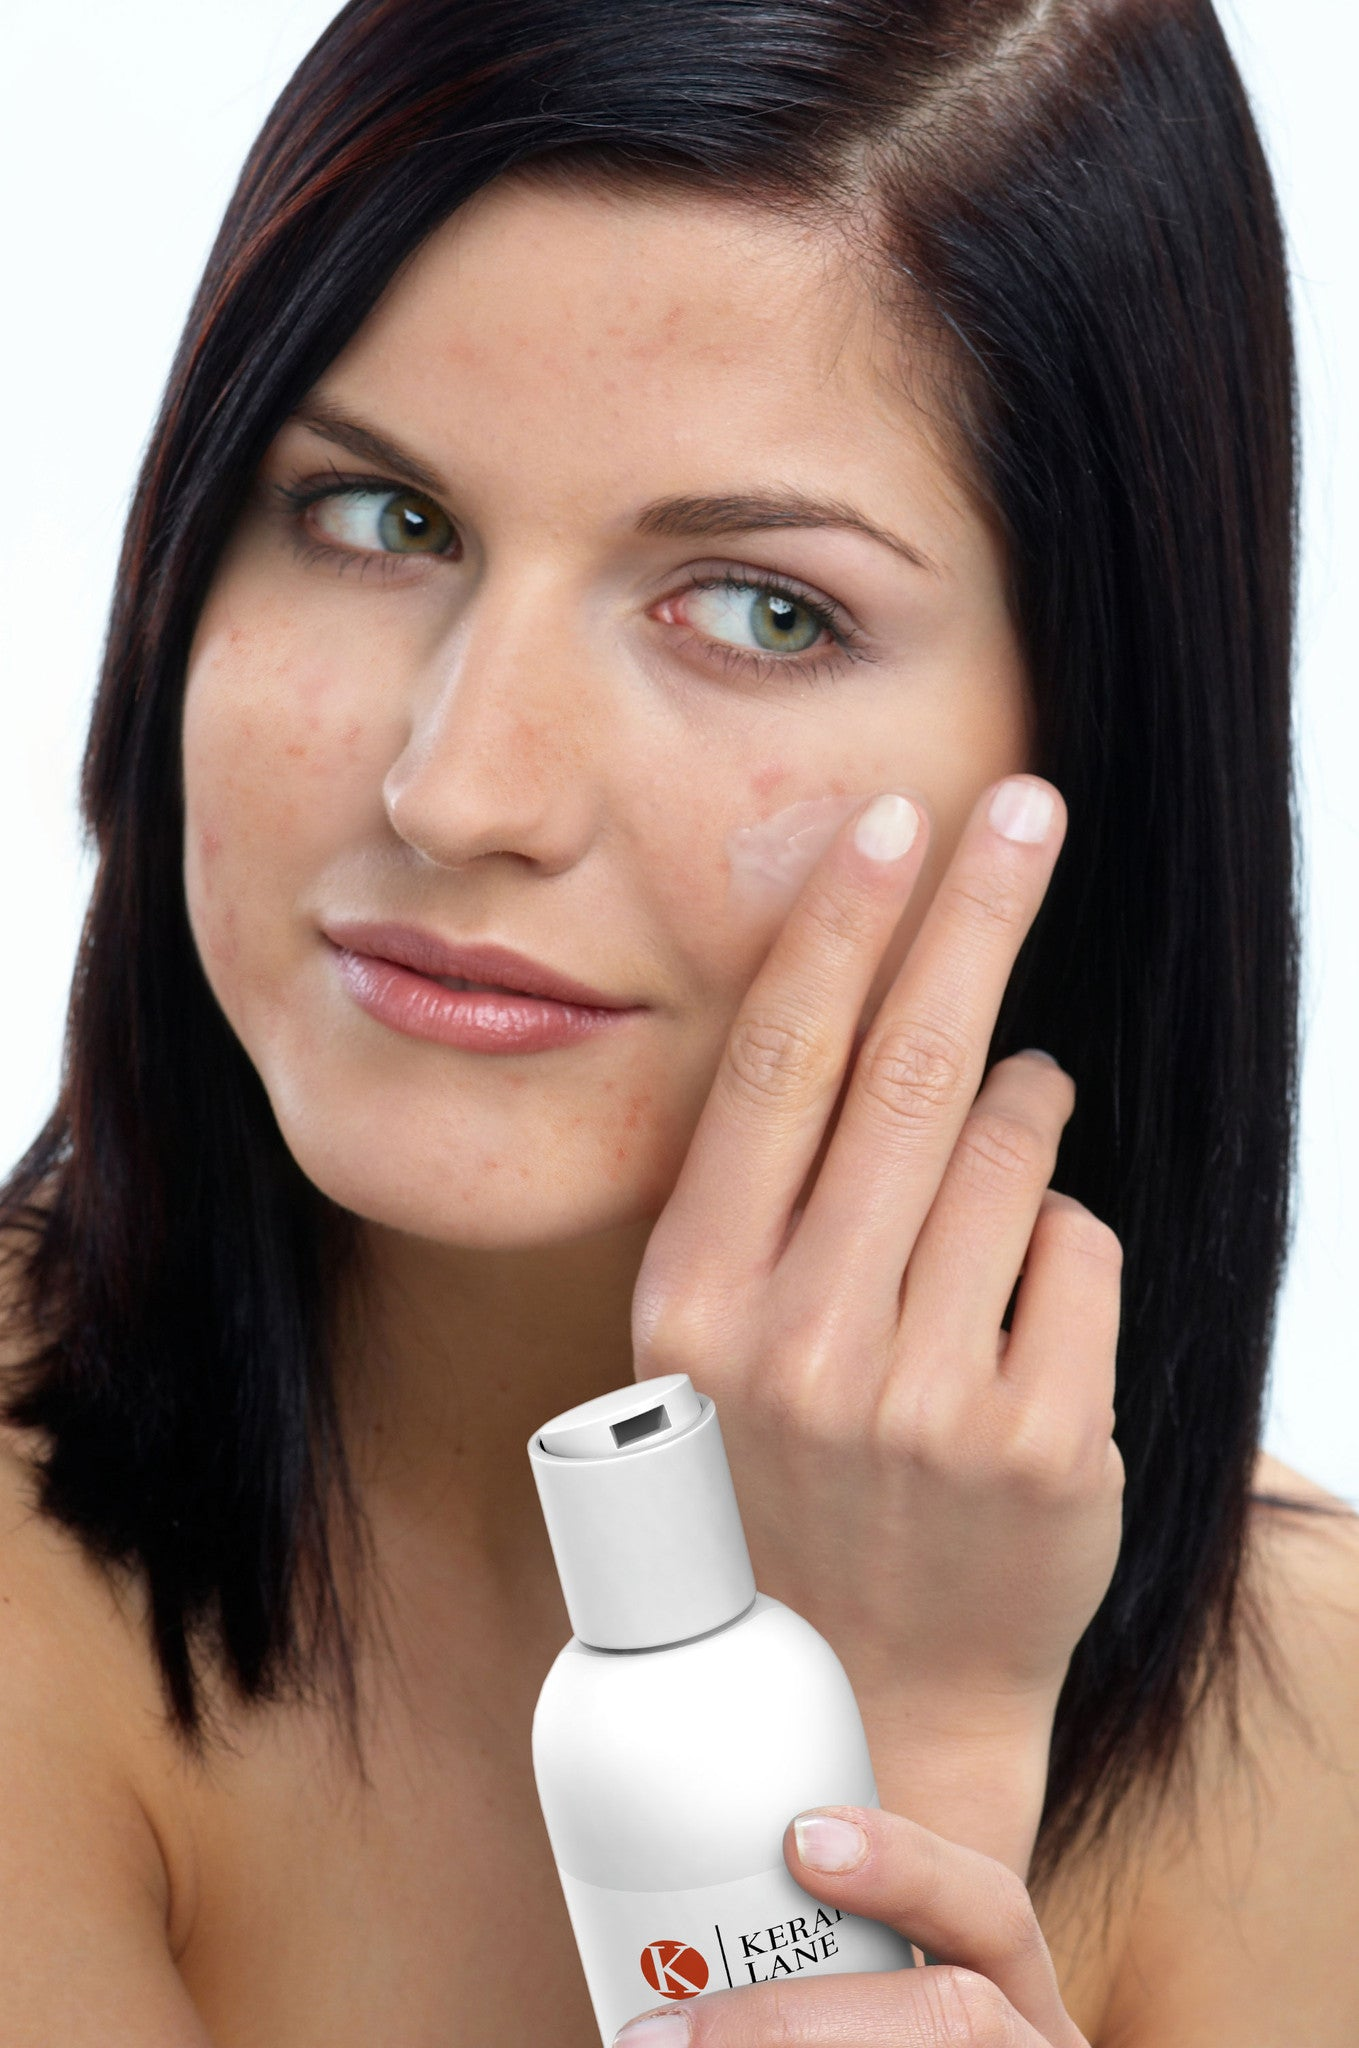 Acne Prevention and Solutions 101